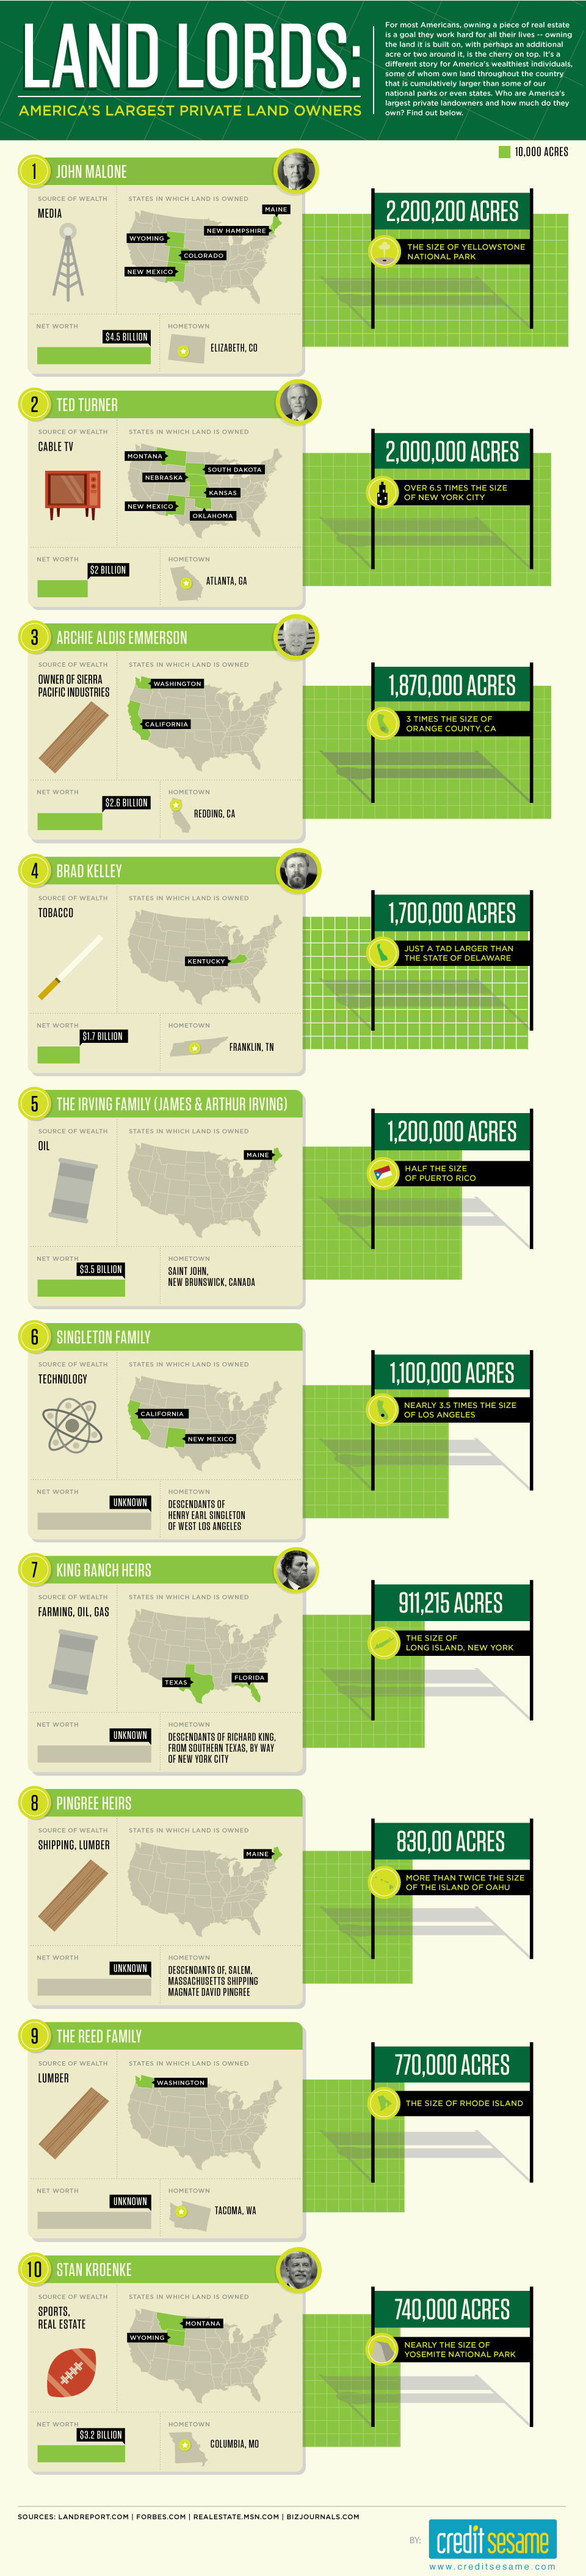 Land Ownership Infographic Provided By CreditSesame.com